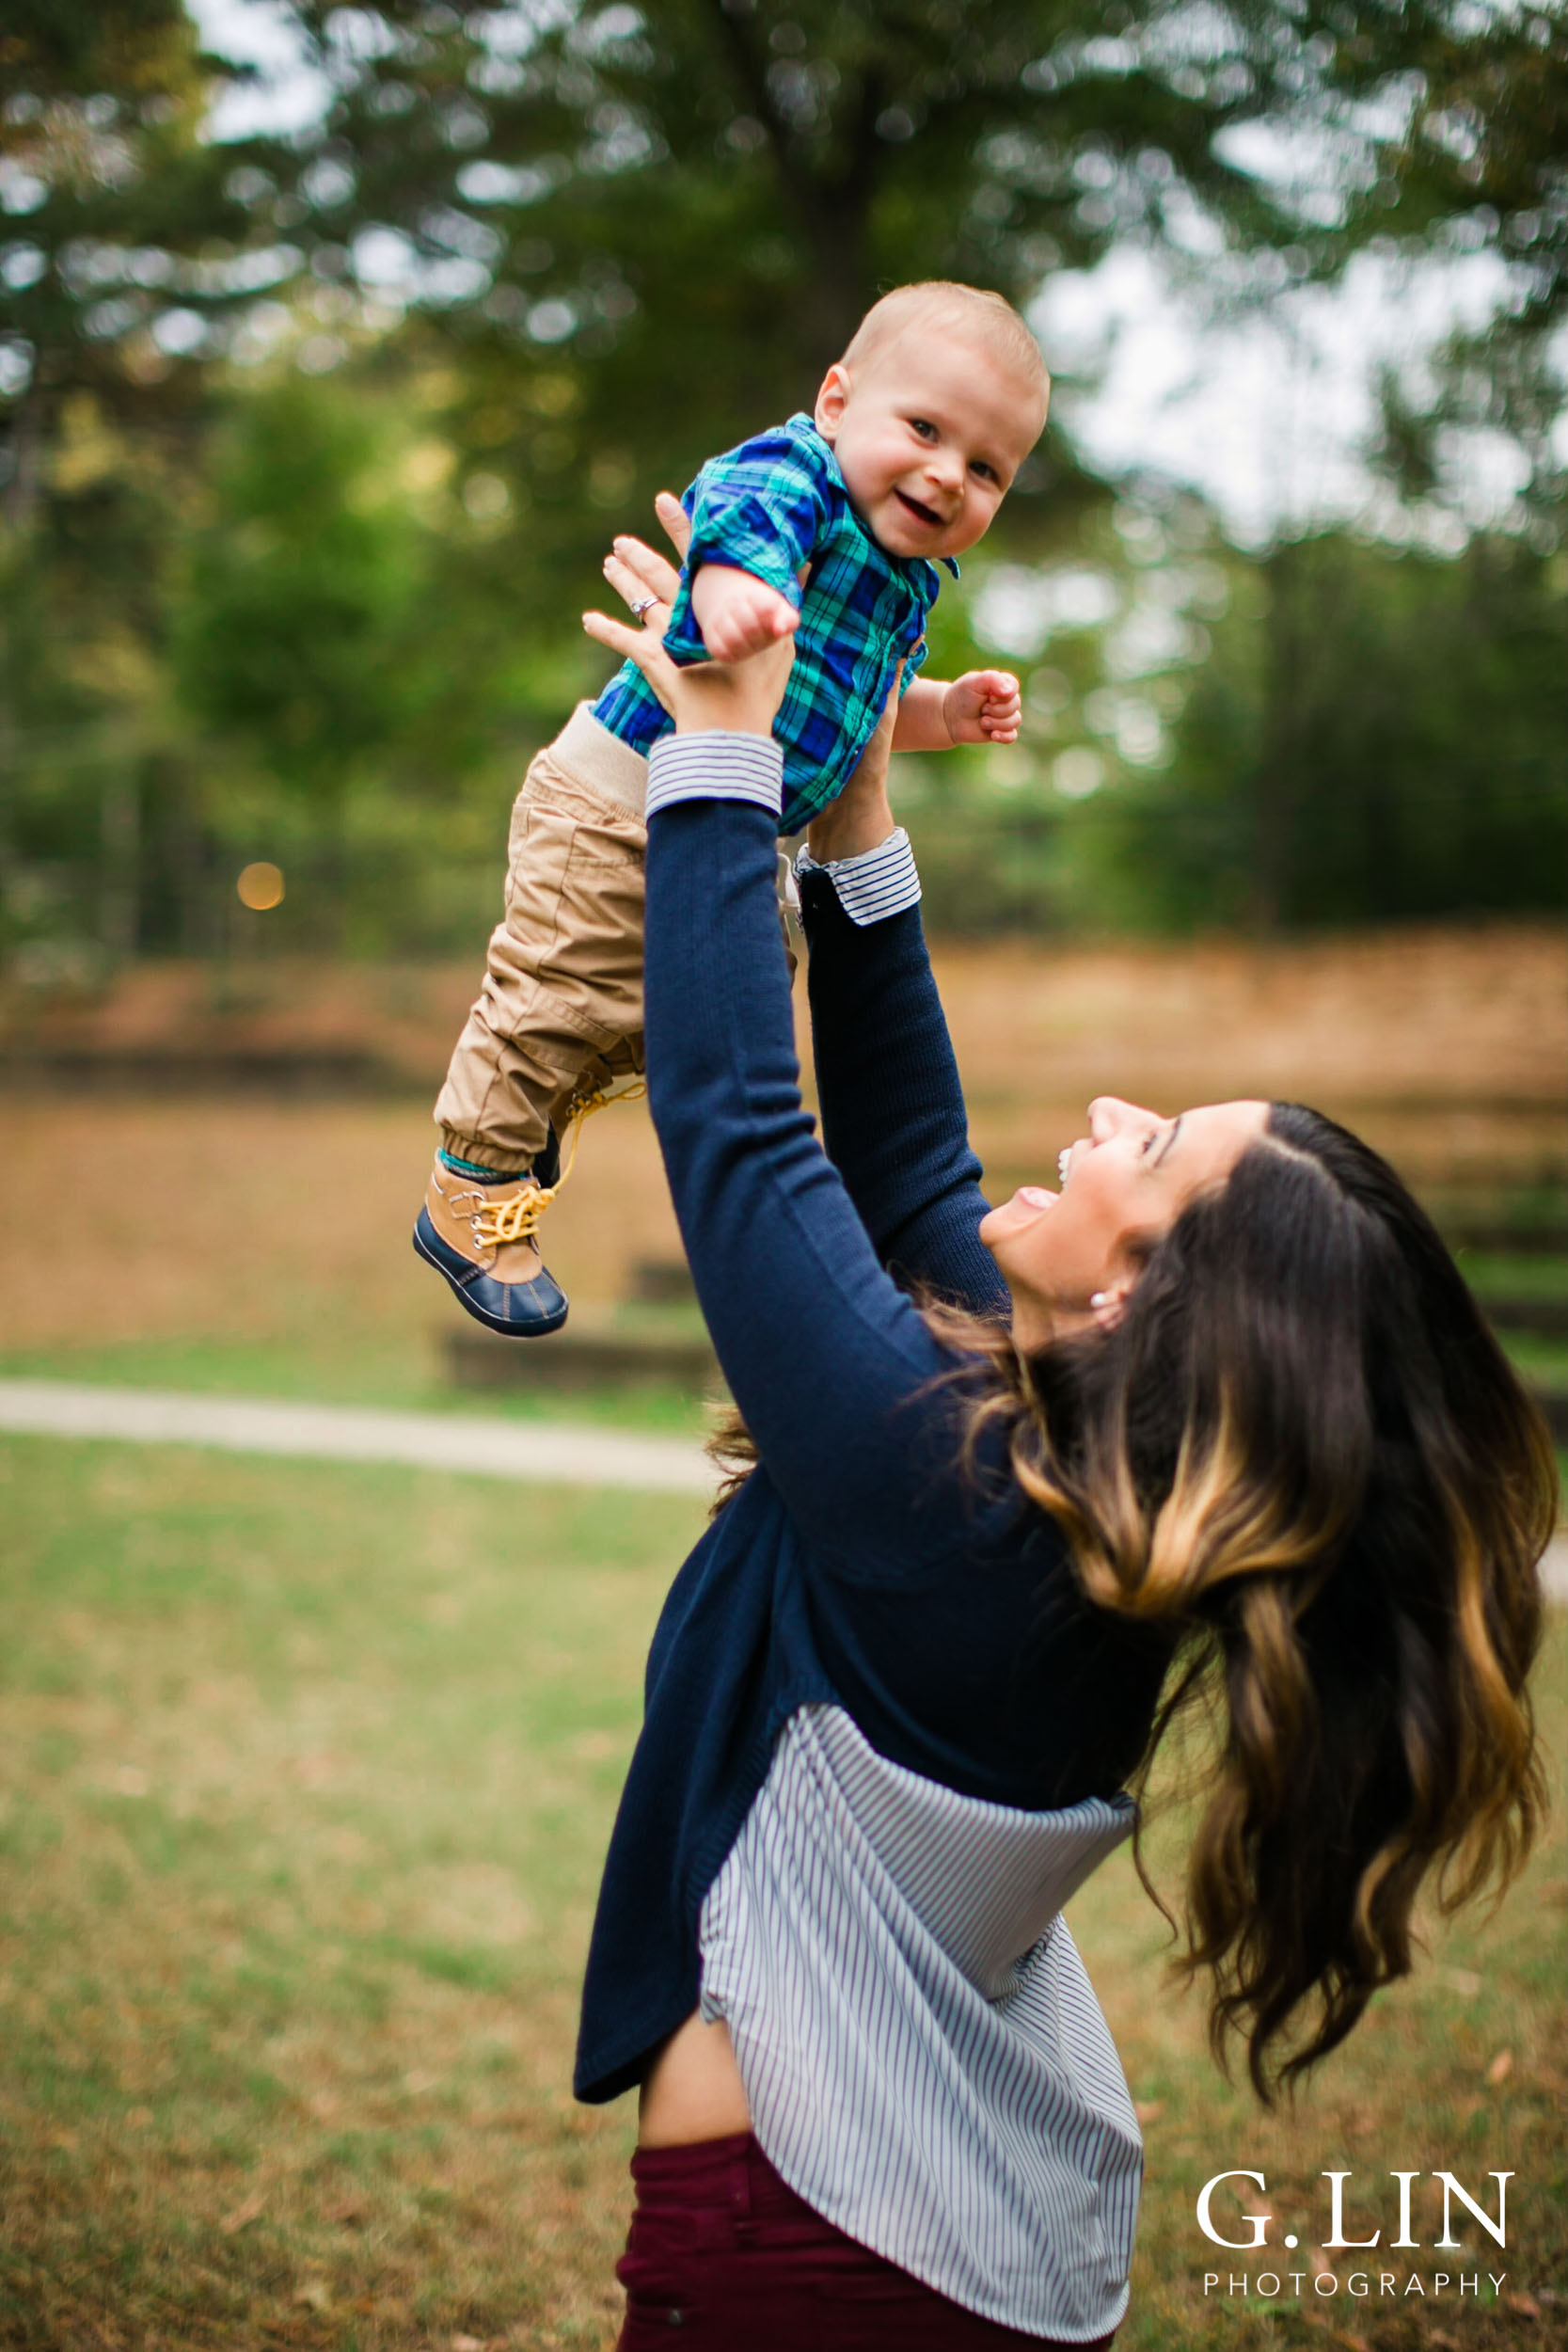 Raleigh Lifestyle Newborn Photography | G. LIn photography | Mom tossing baby boy in the air